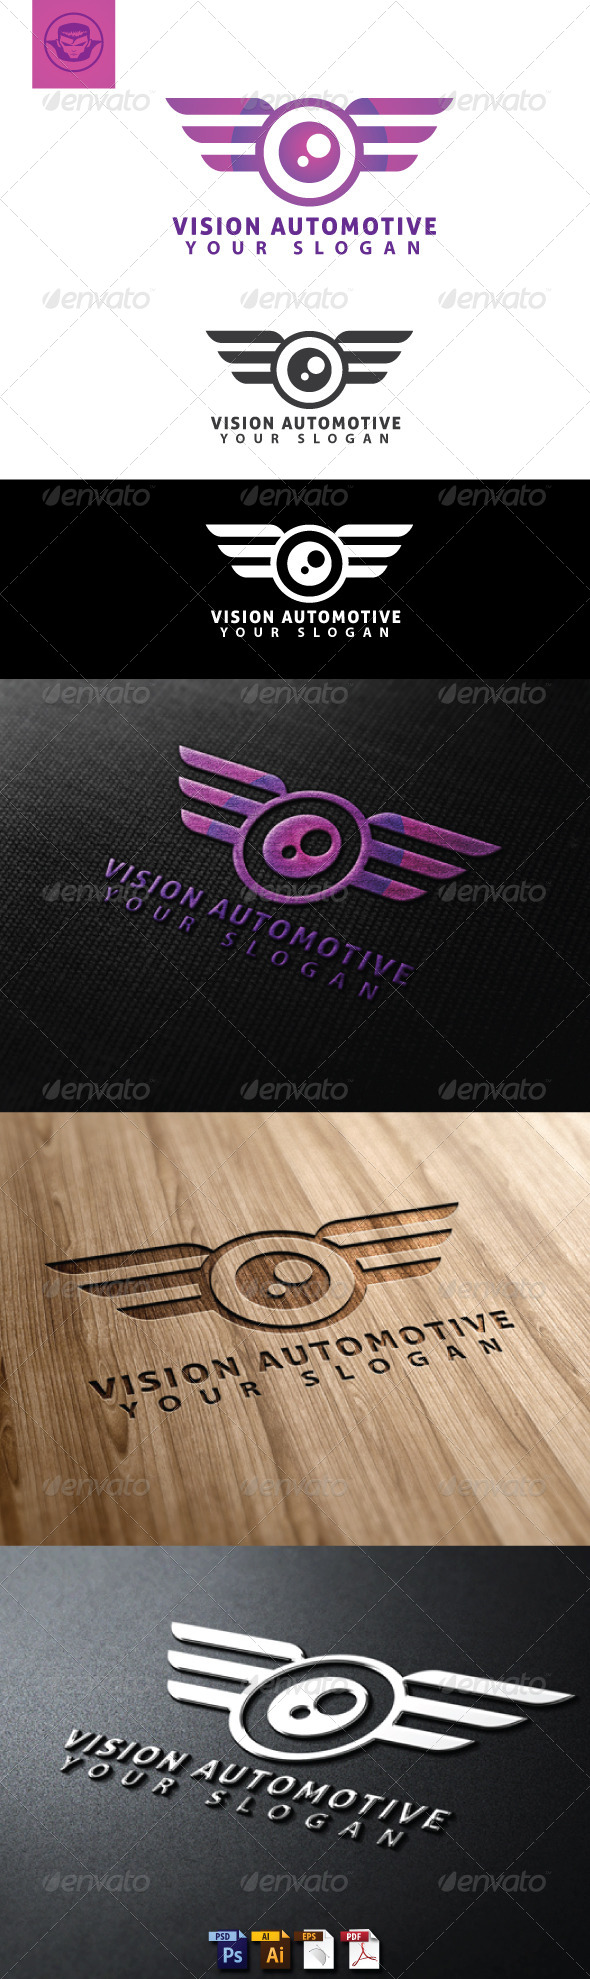 Vision Automotive Logo Template - Symbols Logo Templates